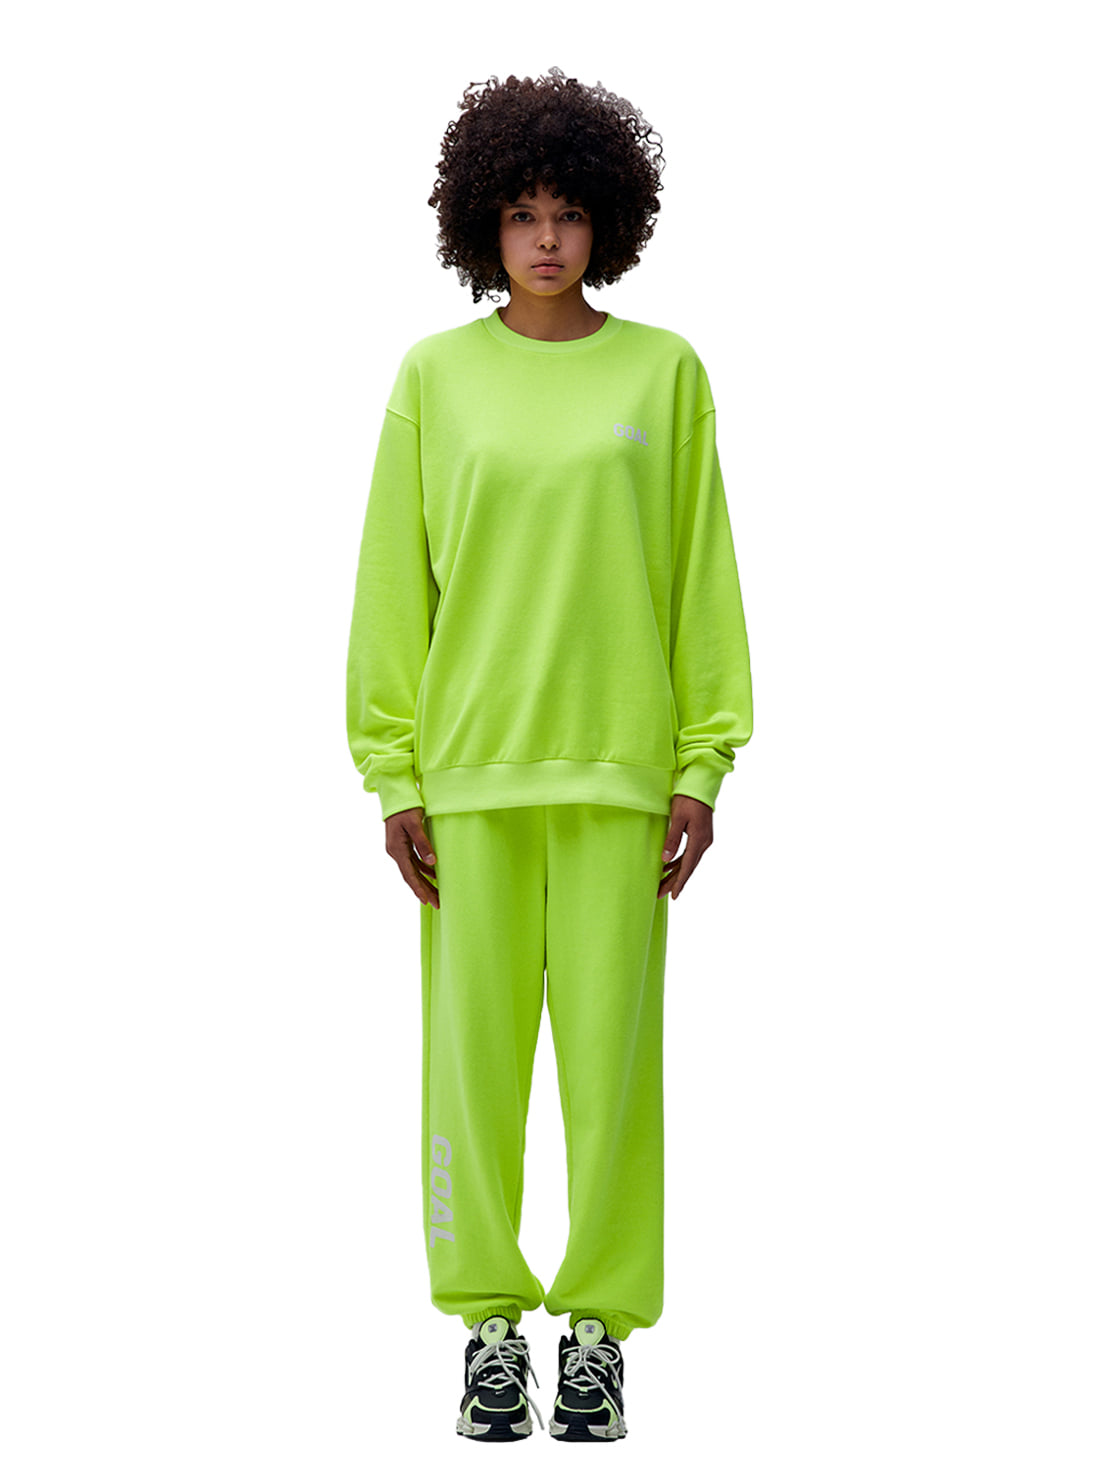 [10% OFF] FLOCKING SWEATSHIRT & PANTS SET - LIME YELLOW